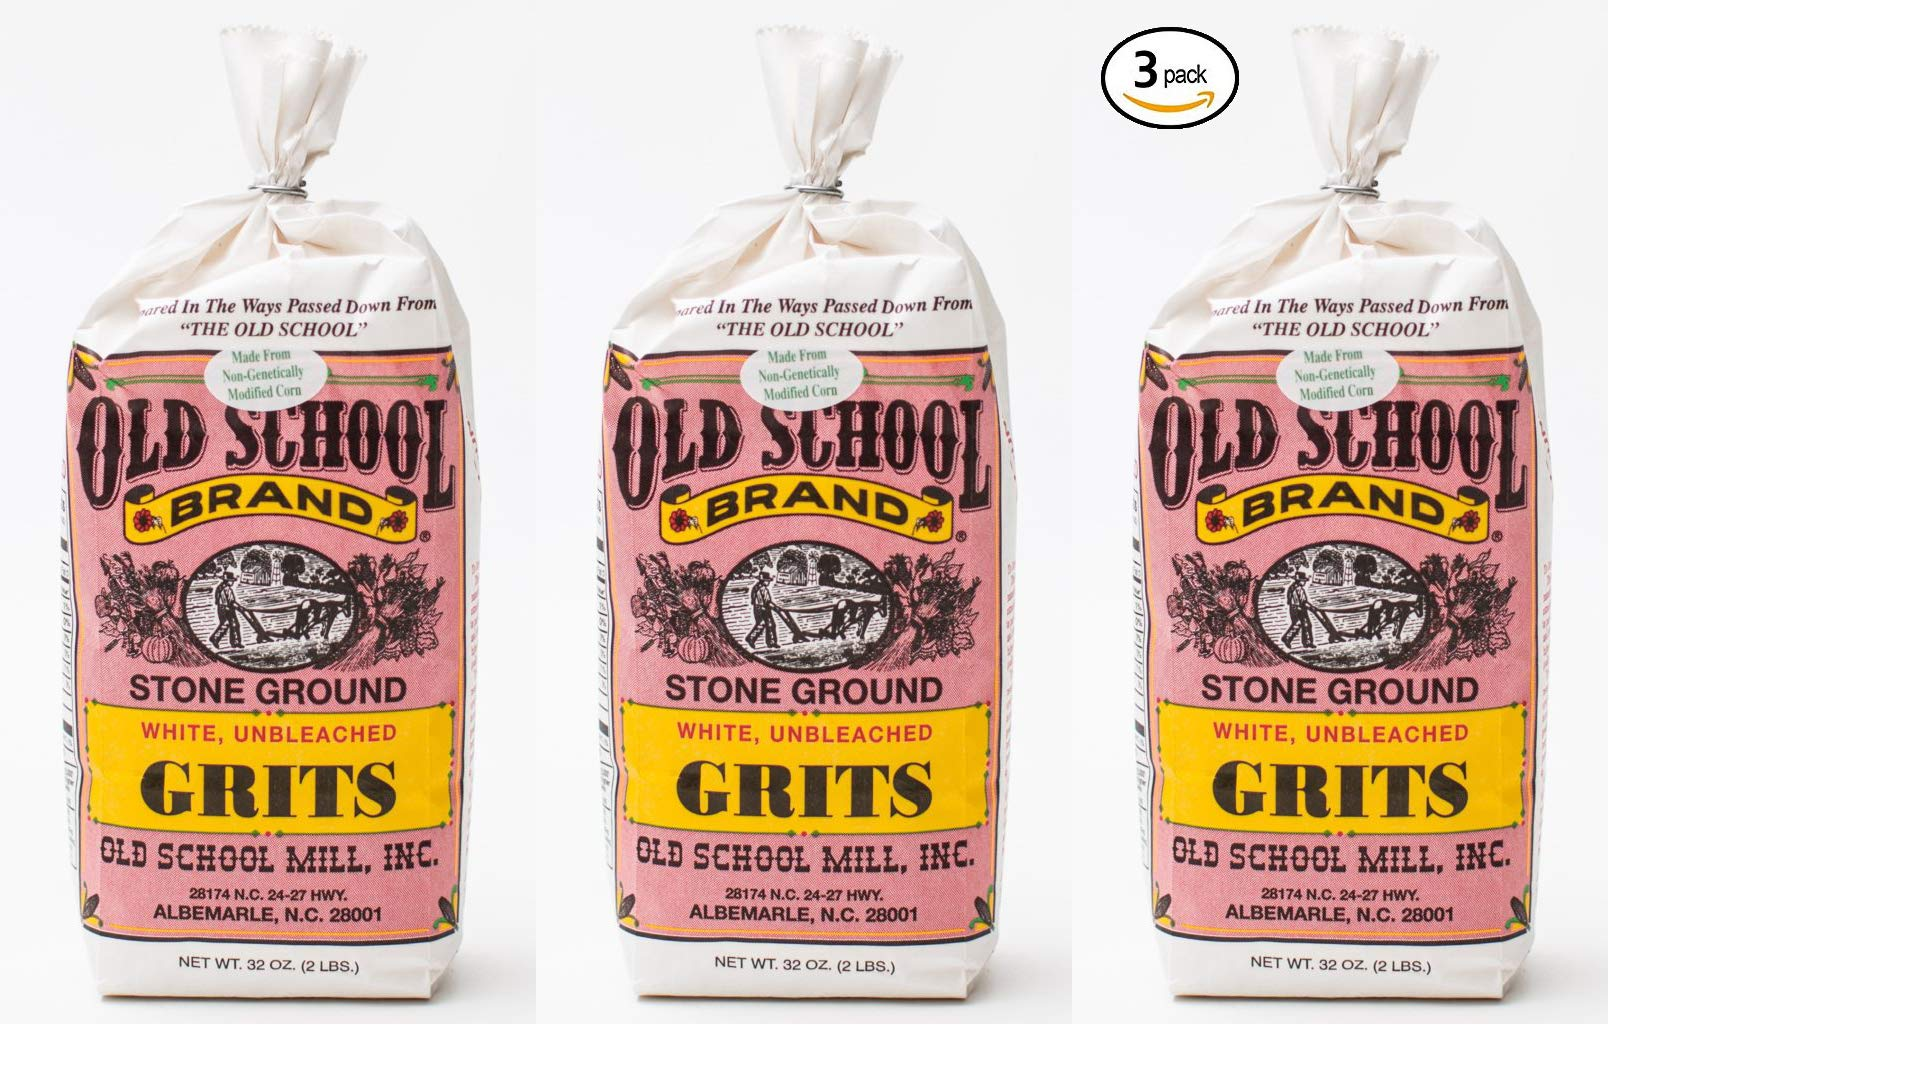 Old School Stone Ground White Corn Grits Non-GMO 32 ounces per bag (Pack of 3)